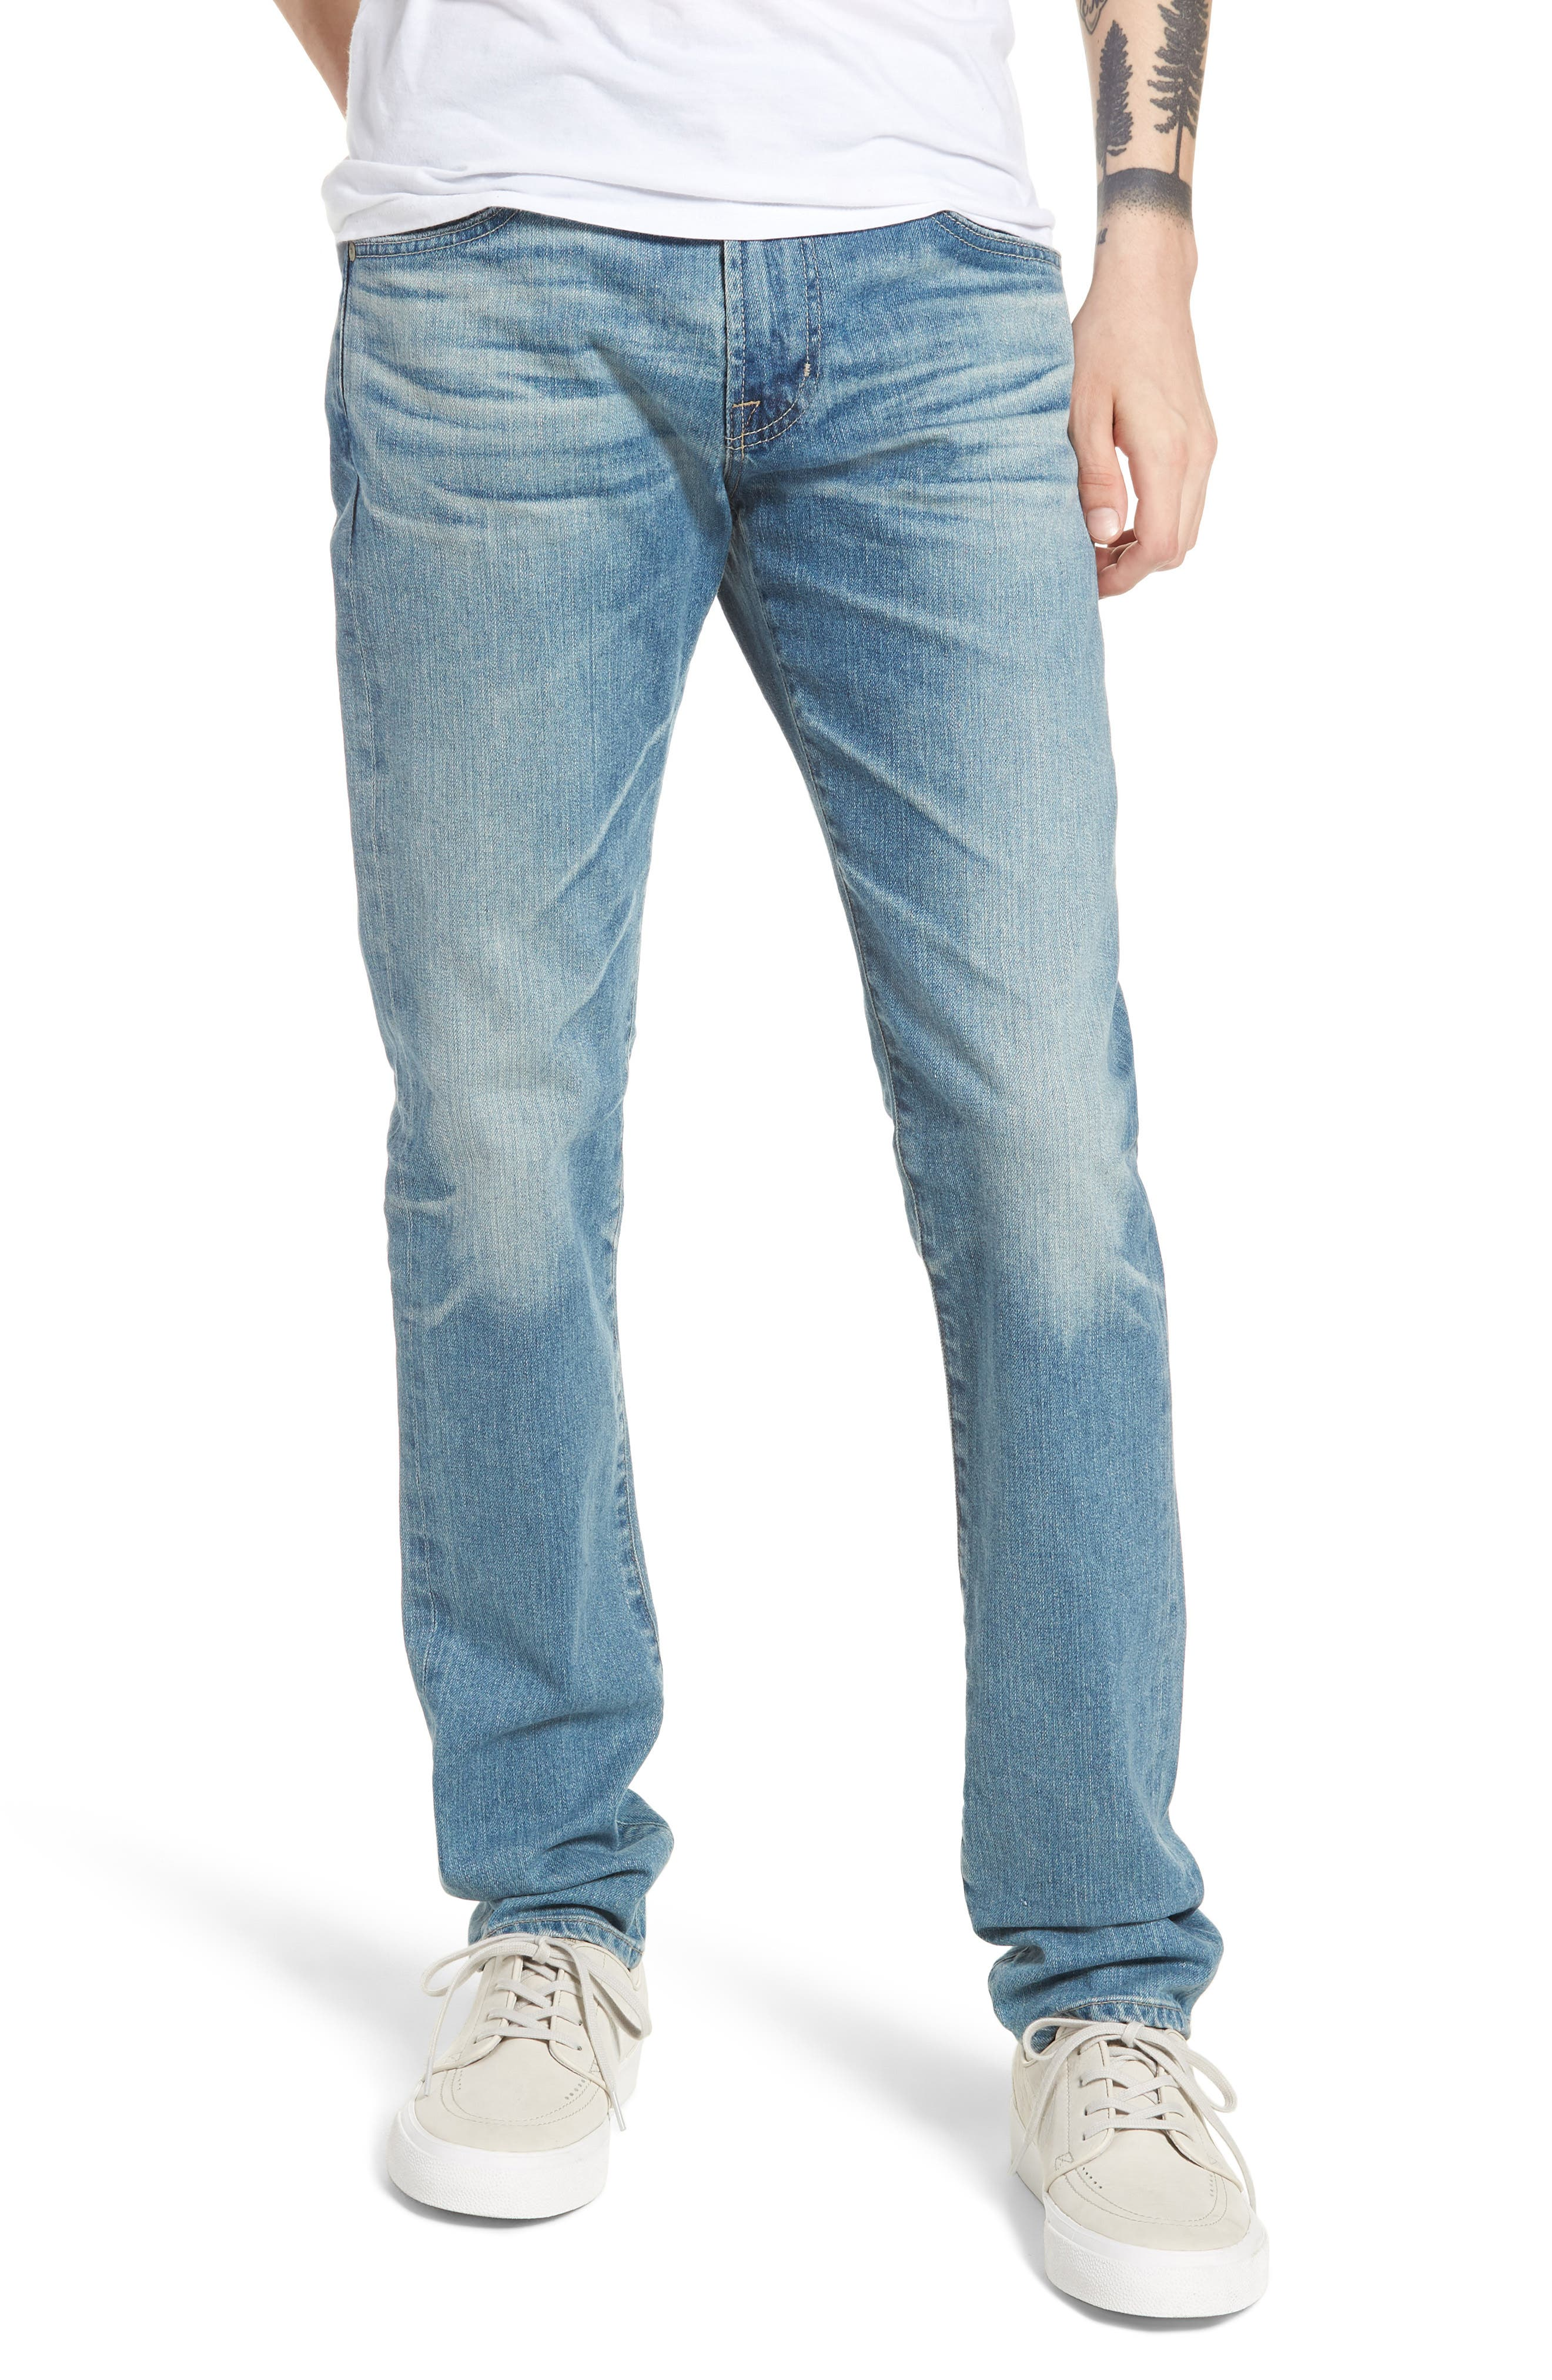 Dylan Skinny Fit Jeans,                         Main,                         color, 18 Years Oceano